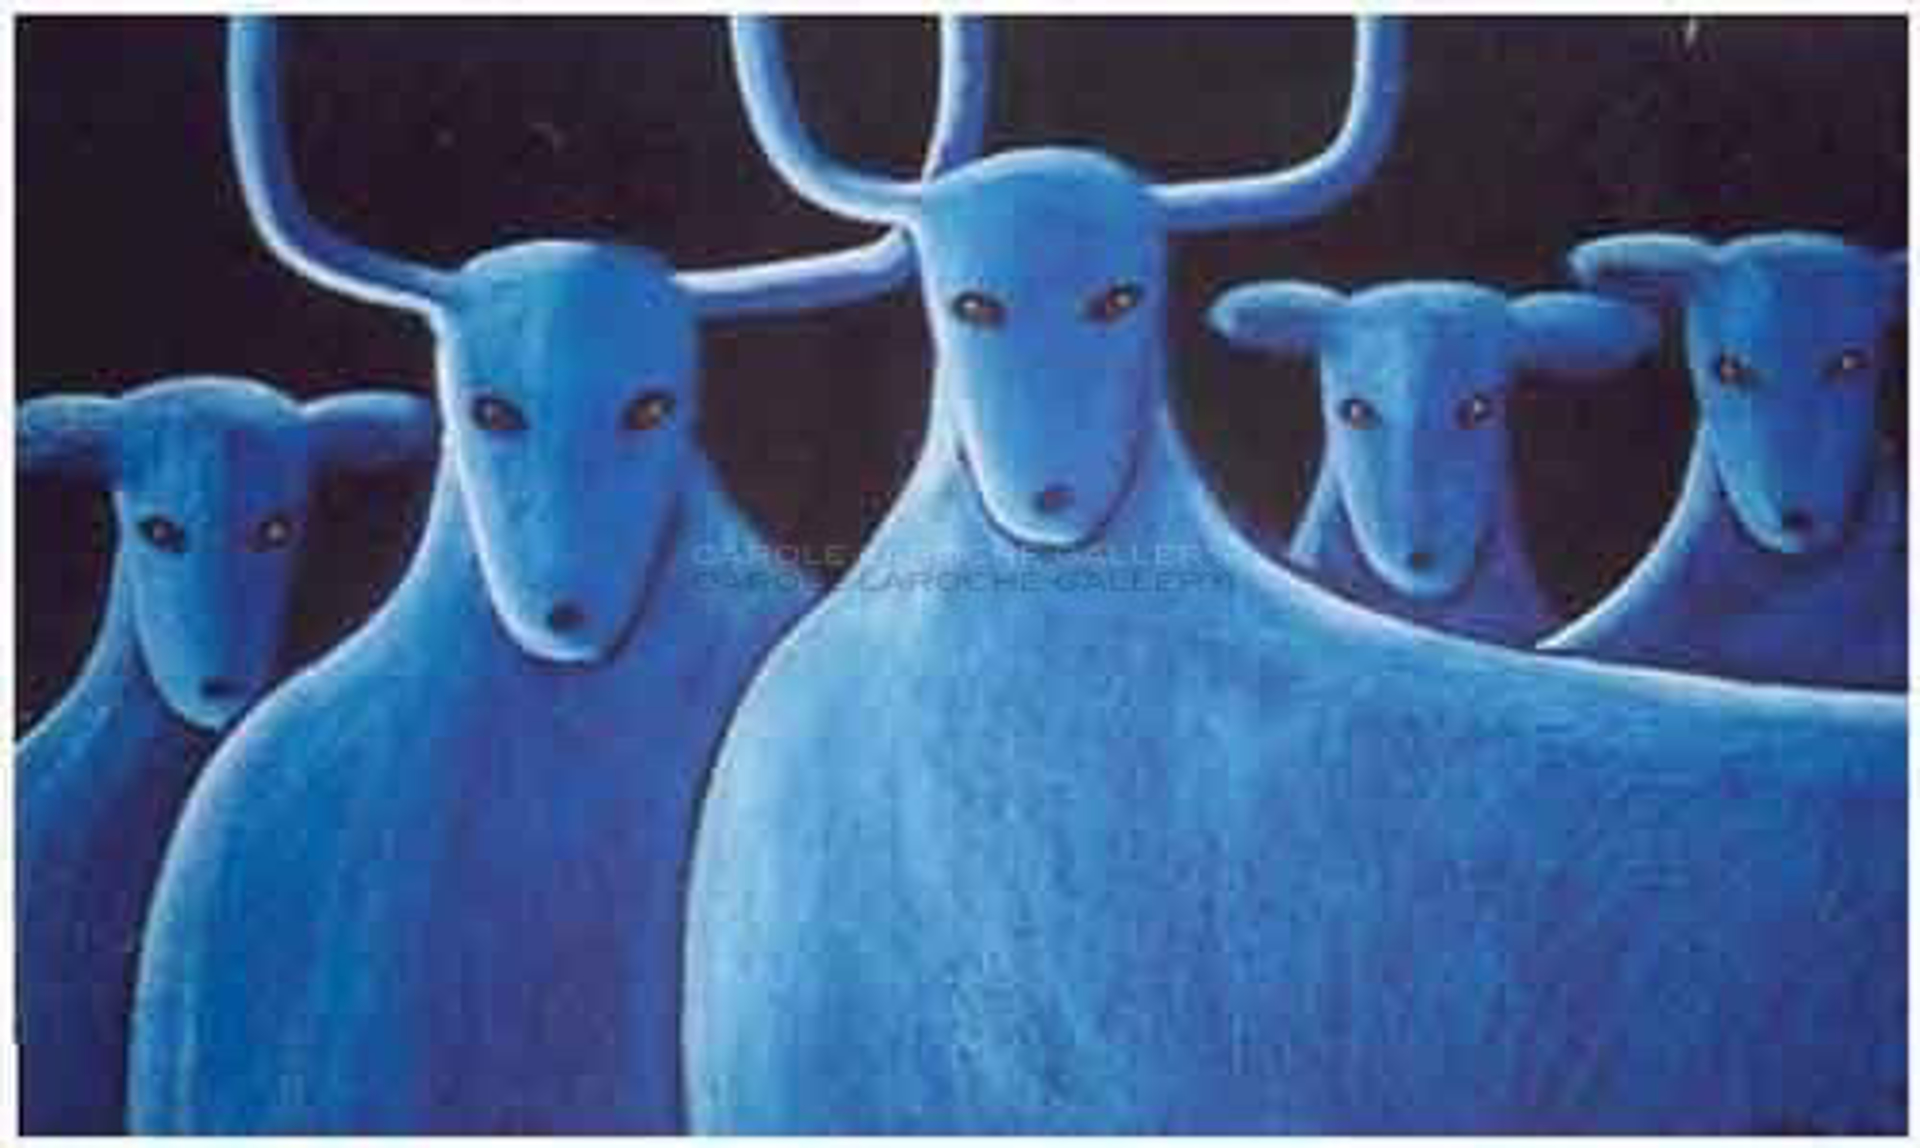 "FIVE BLUE DEER - limited edition giclee on canvas (large) 40""x54"" $3500 or (medium) 30""x40"" $2200 or on paper w/frame size of: (large) 40""x54"" $3700 or (medium) 30""x40"" $2200 by Carole LaRoche"